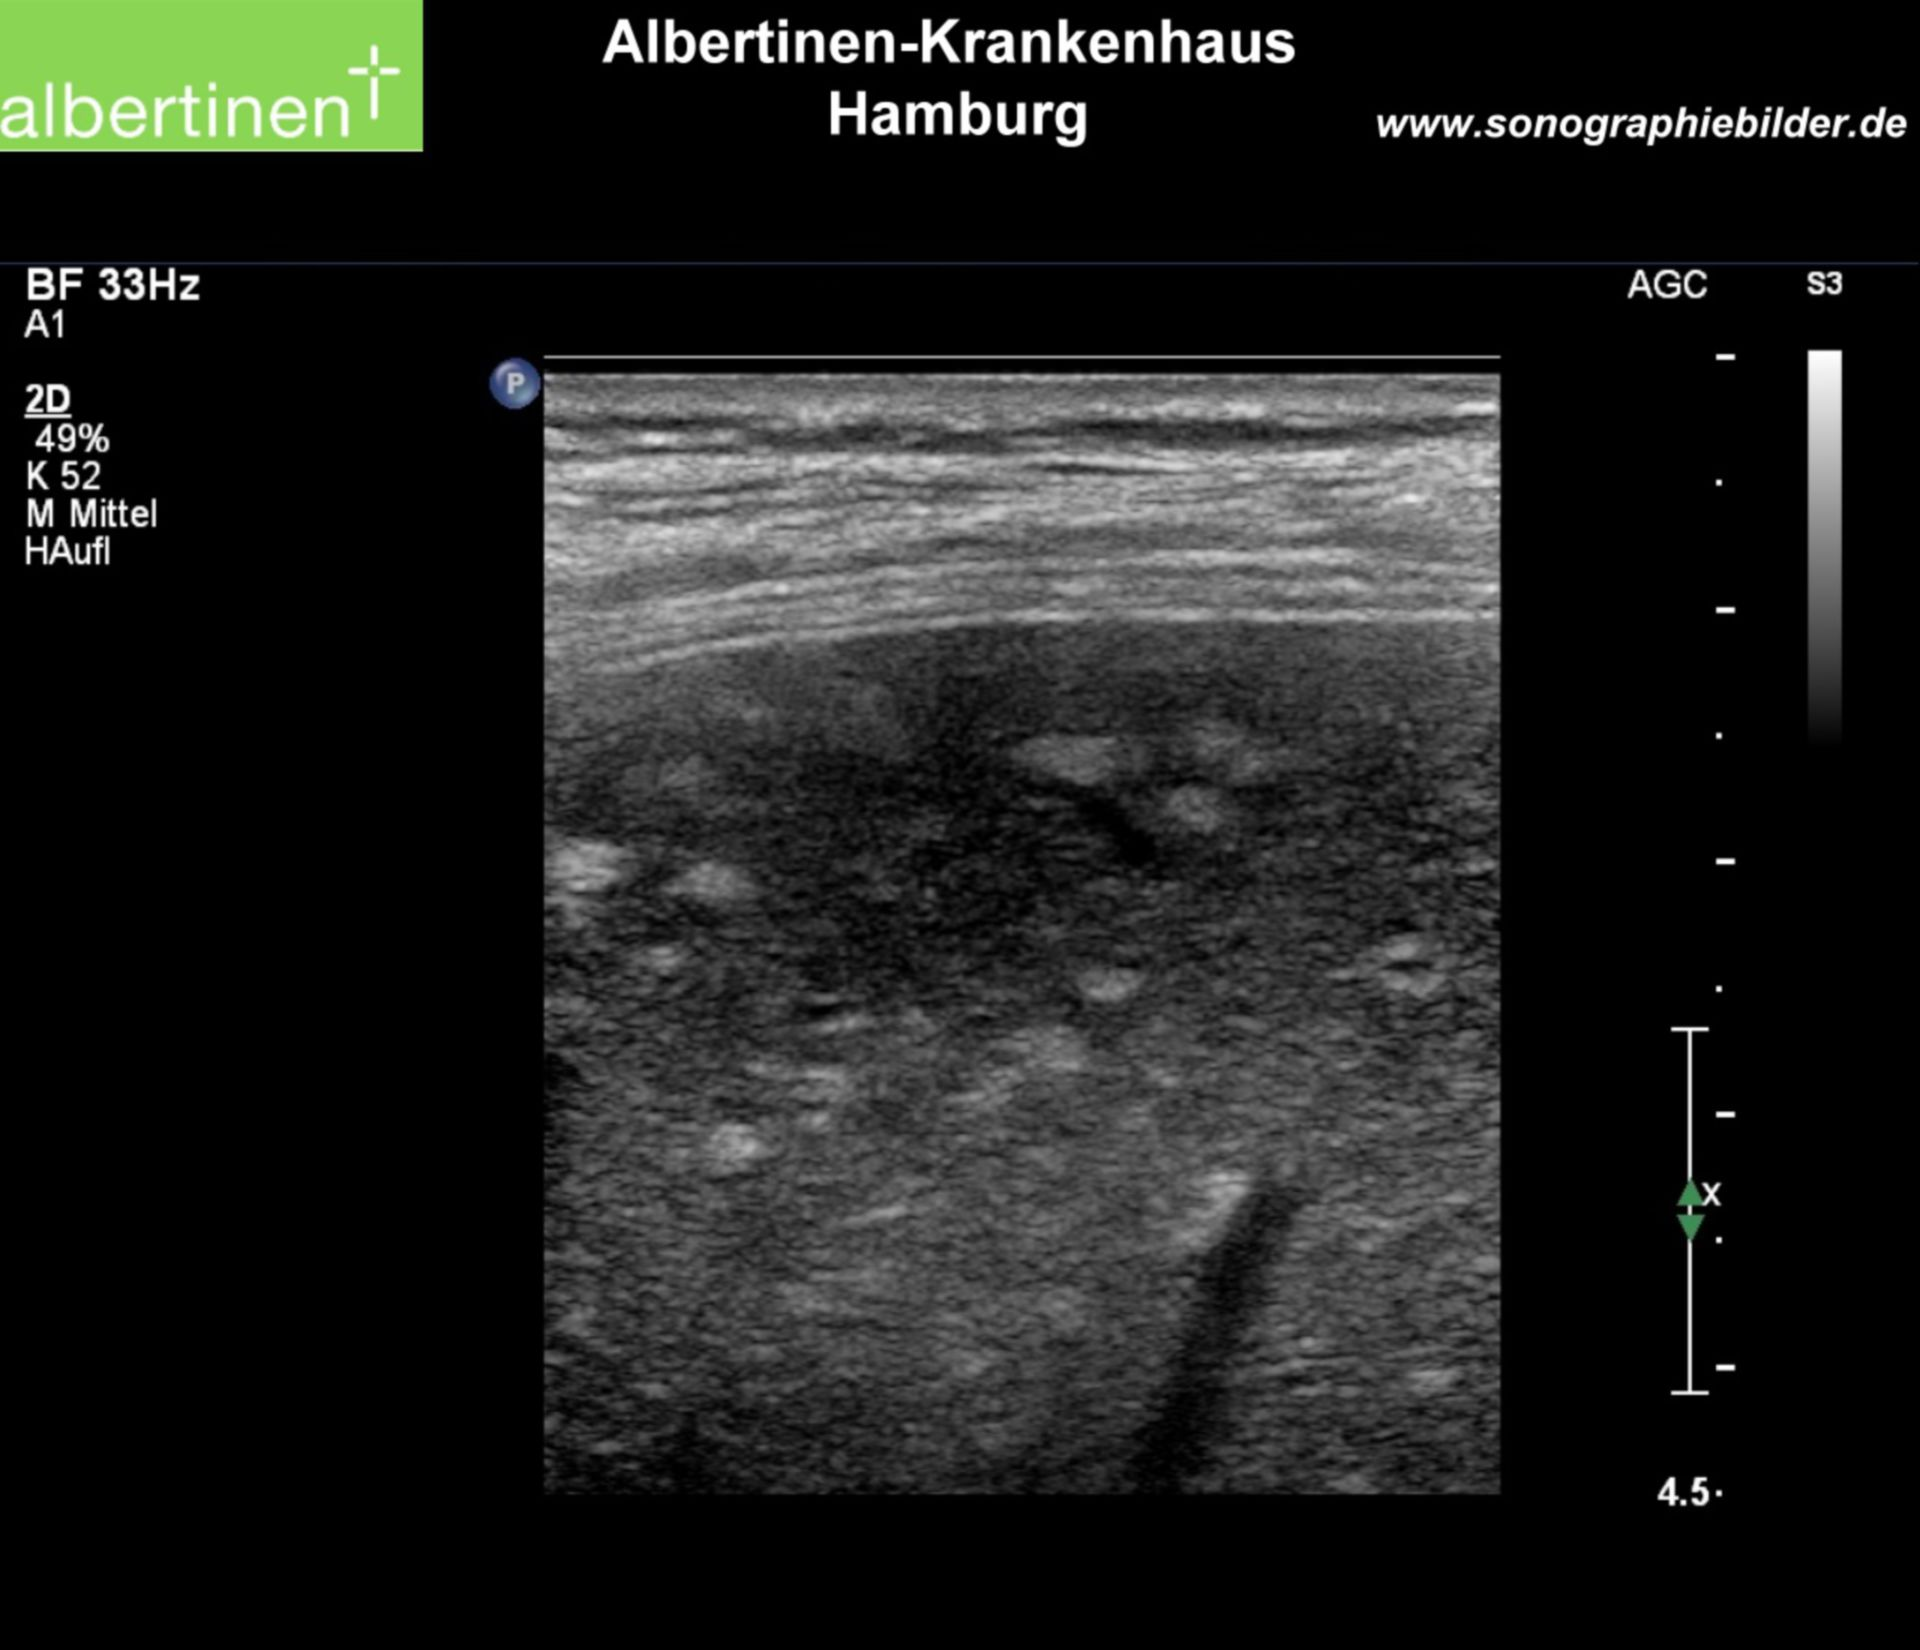 Sonography: Small spotted fatty liver